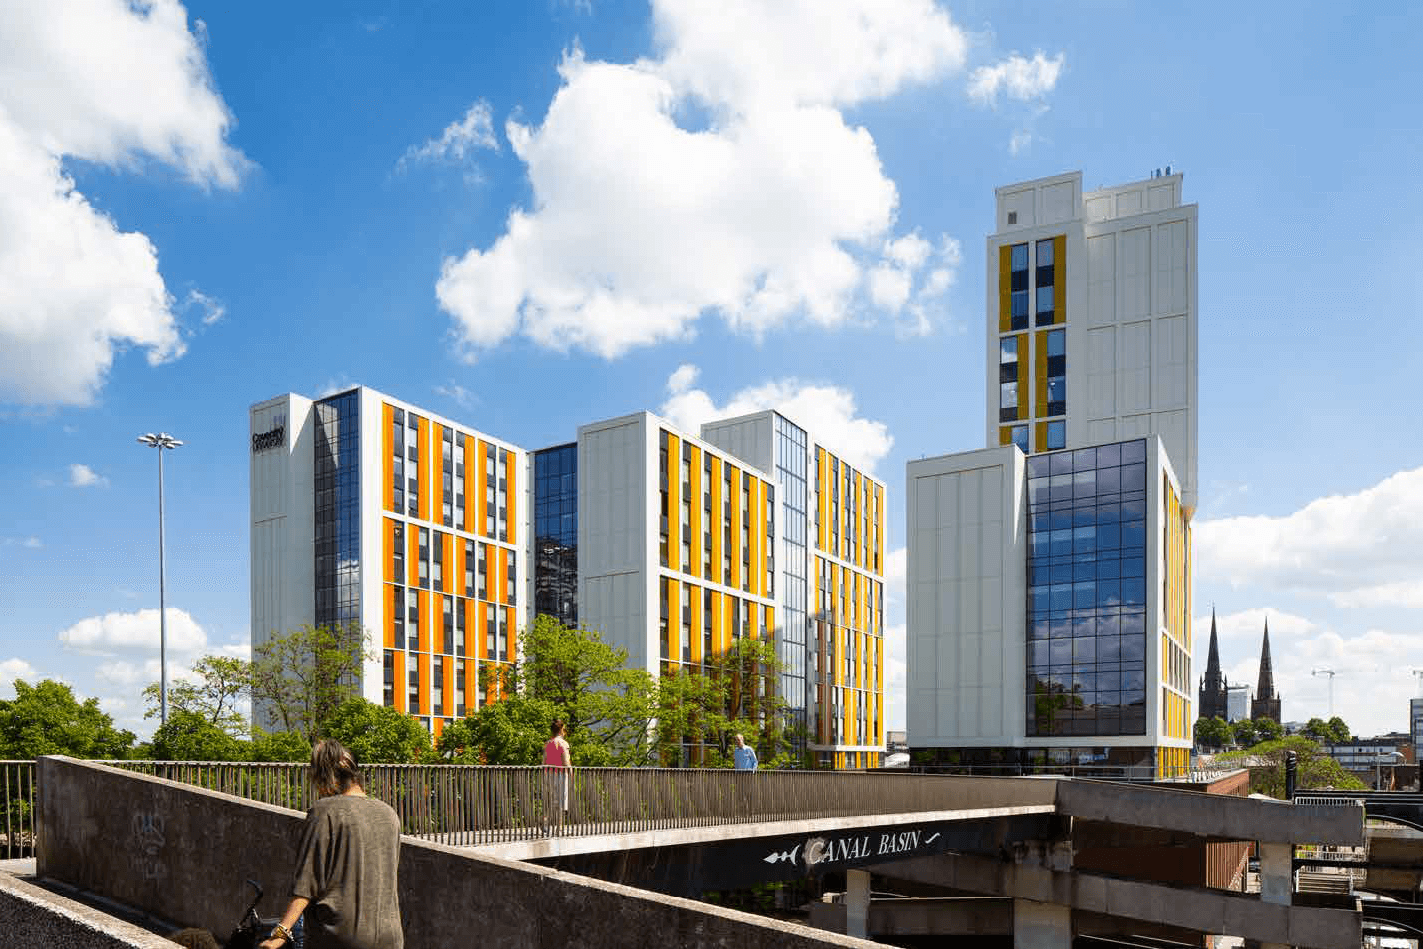 Side view of the Bishop Gate student accommodation scheme